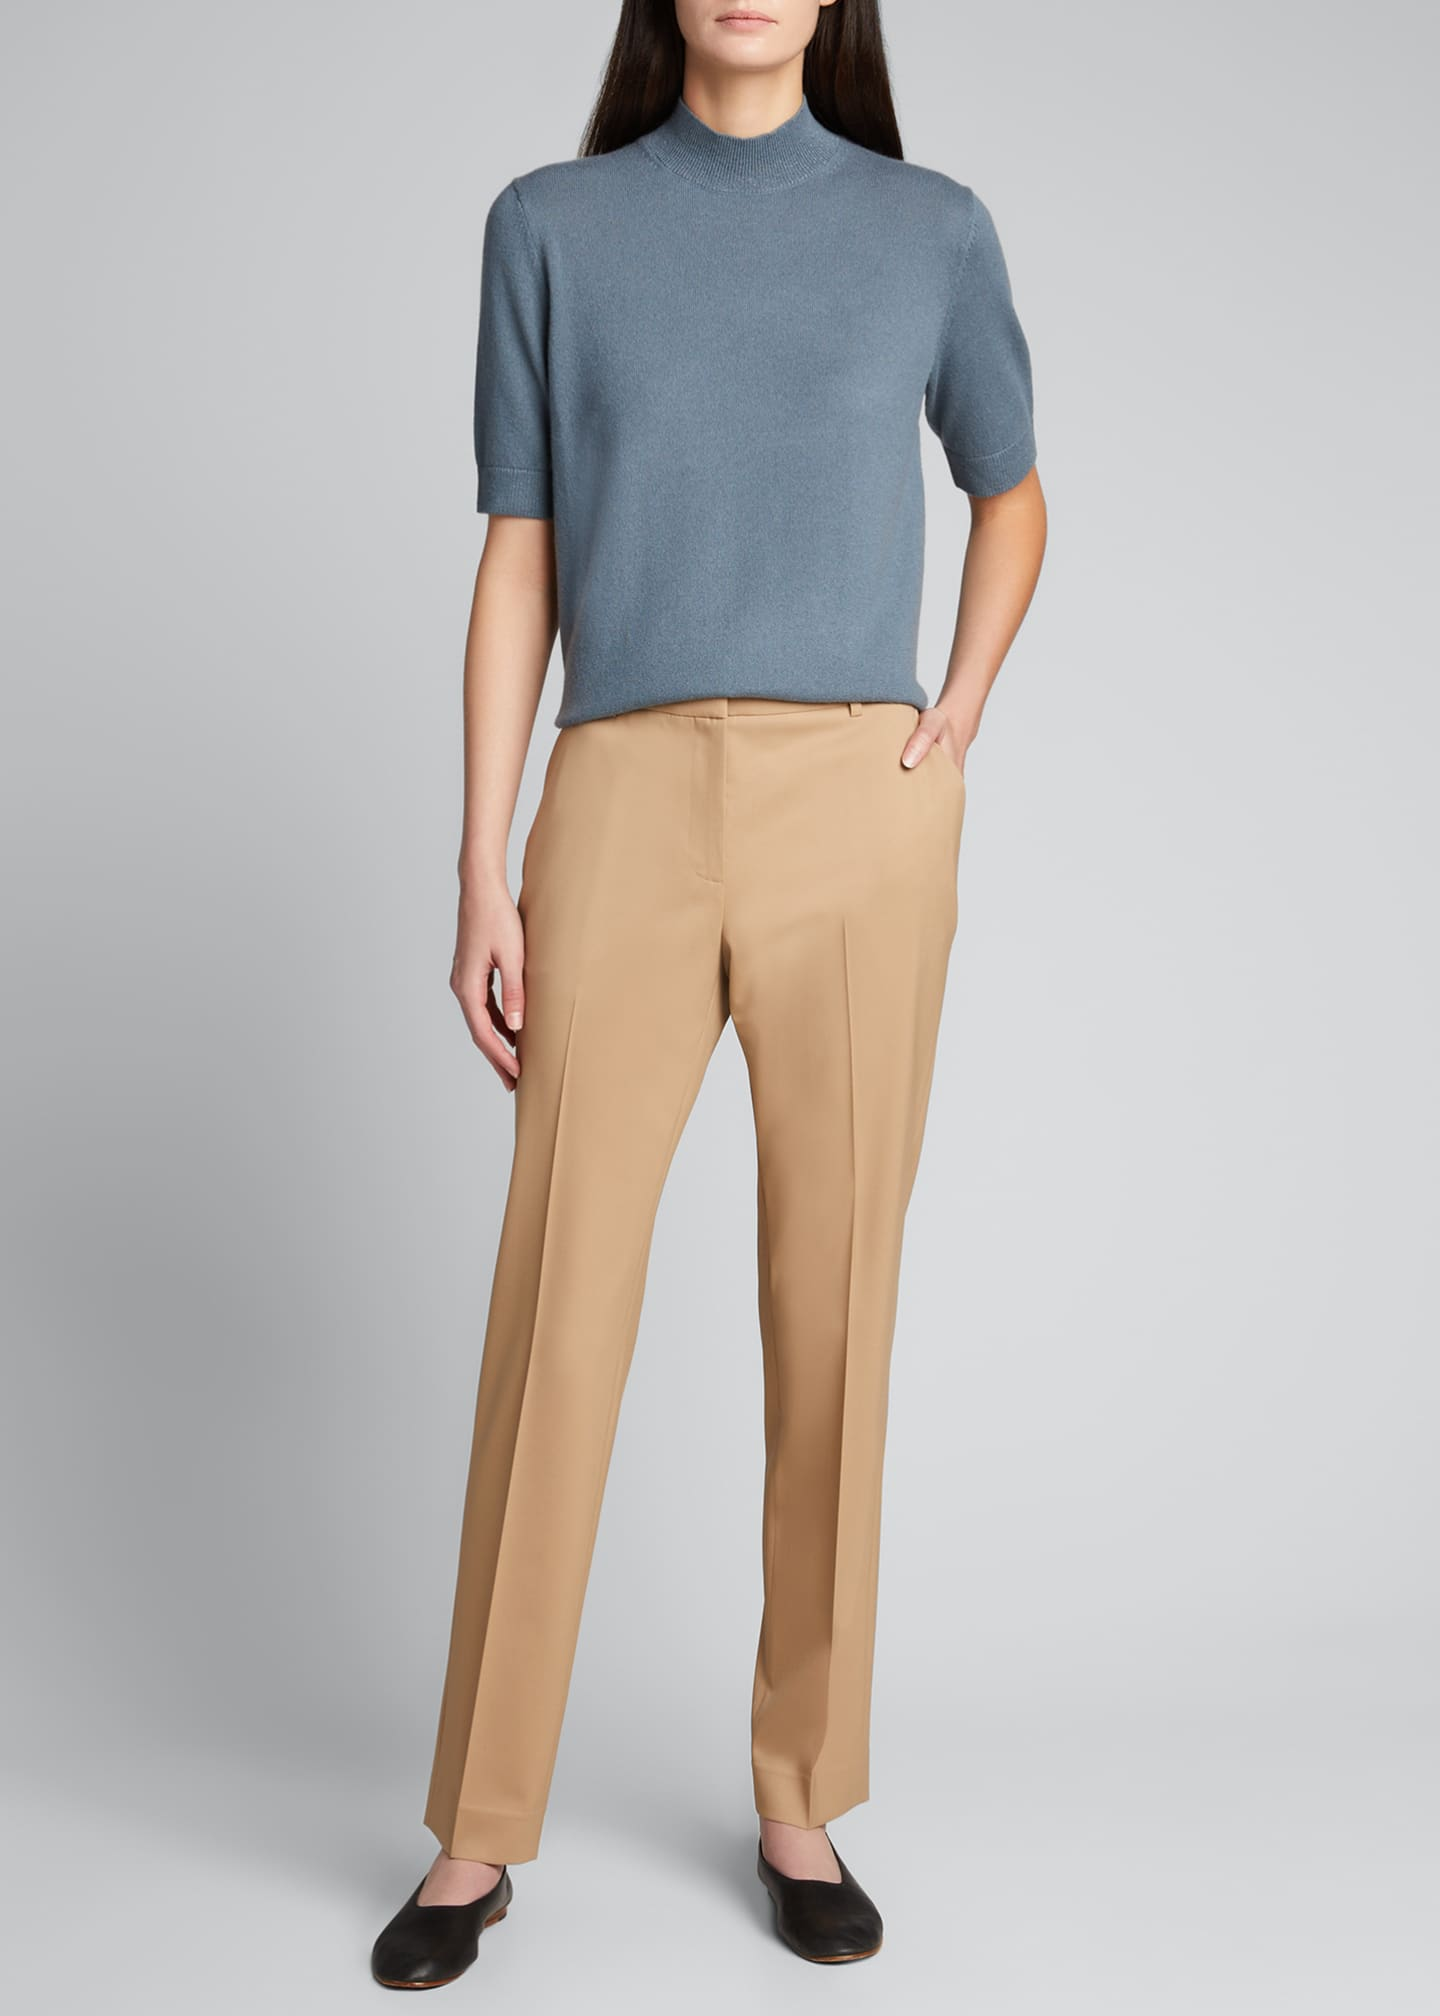 Image 1 of 5: Cashmere Mock-Neck Sweater with Metallic